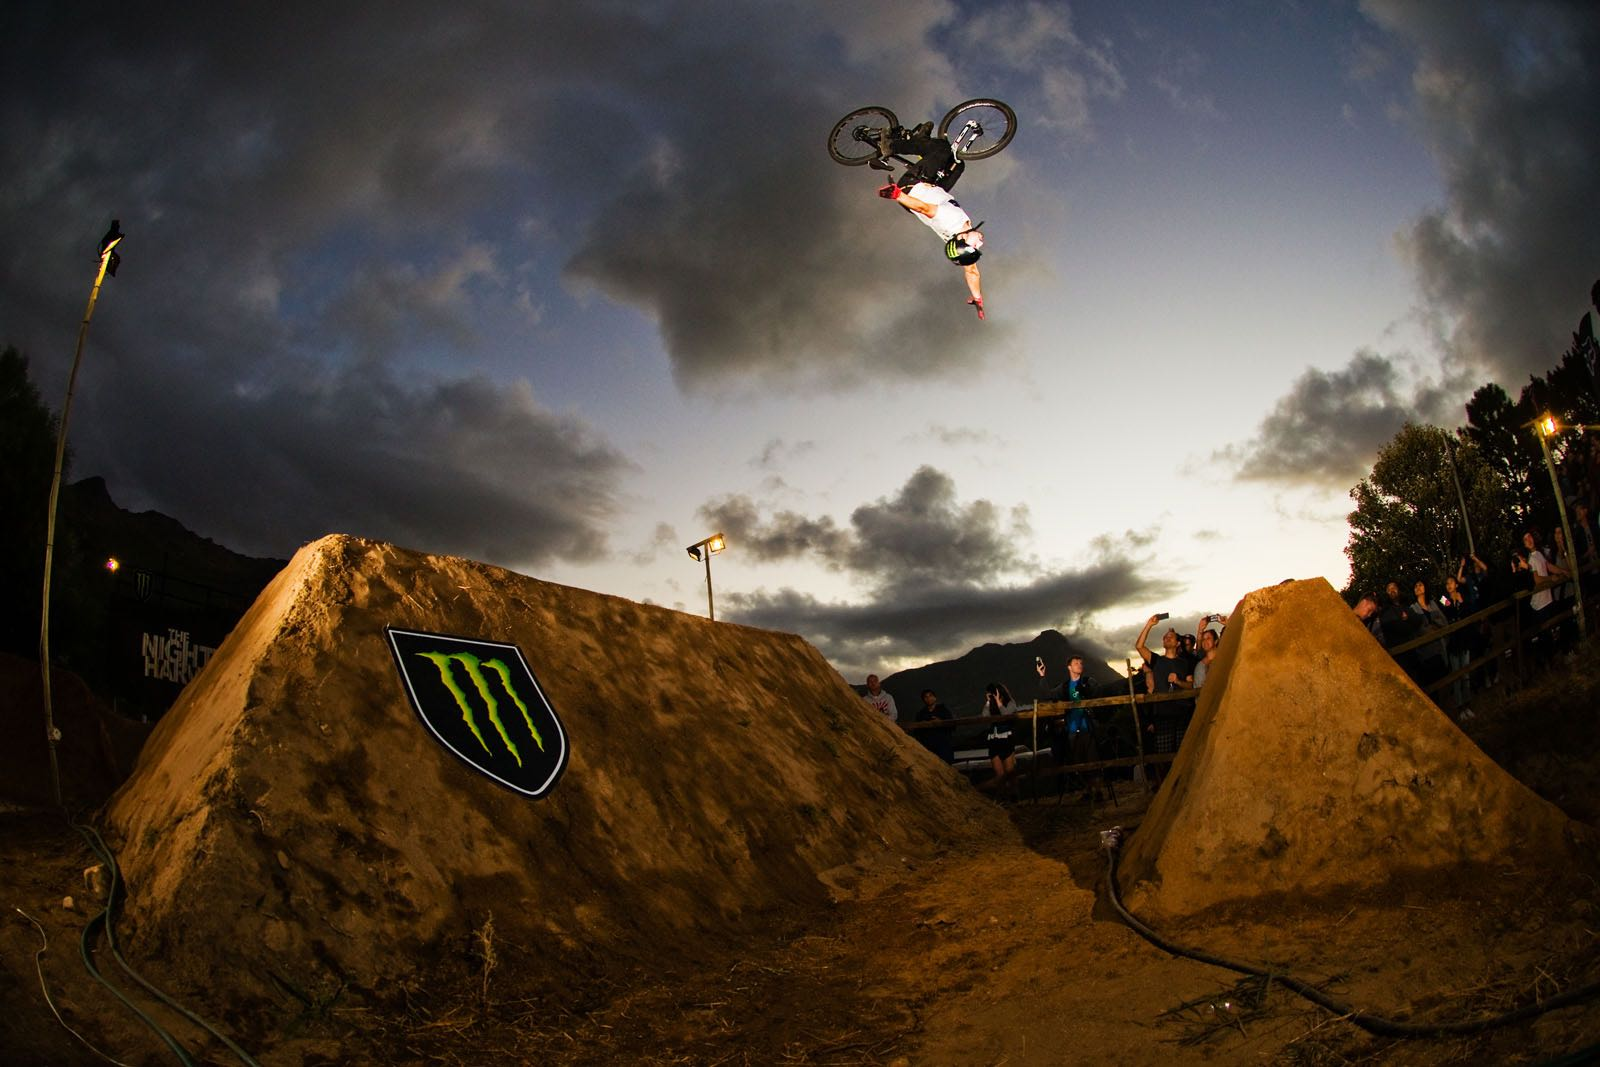 Freestyle Mountain Bike riders competing at The Night Harvest BMX and MTB Dirt Jump competition